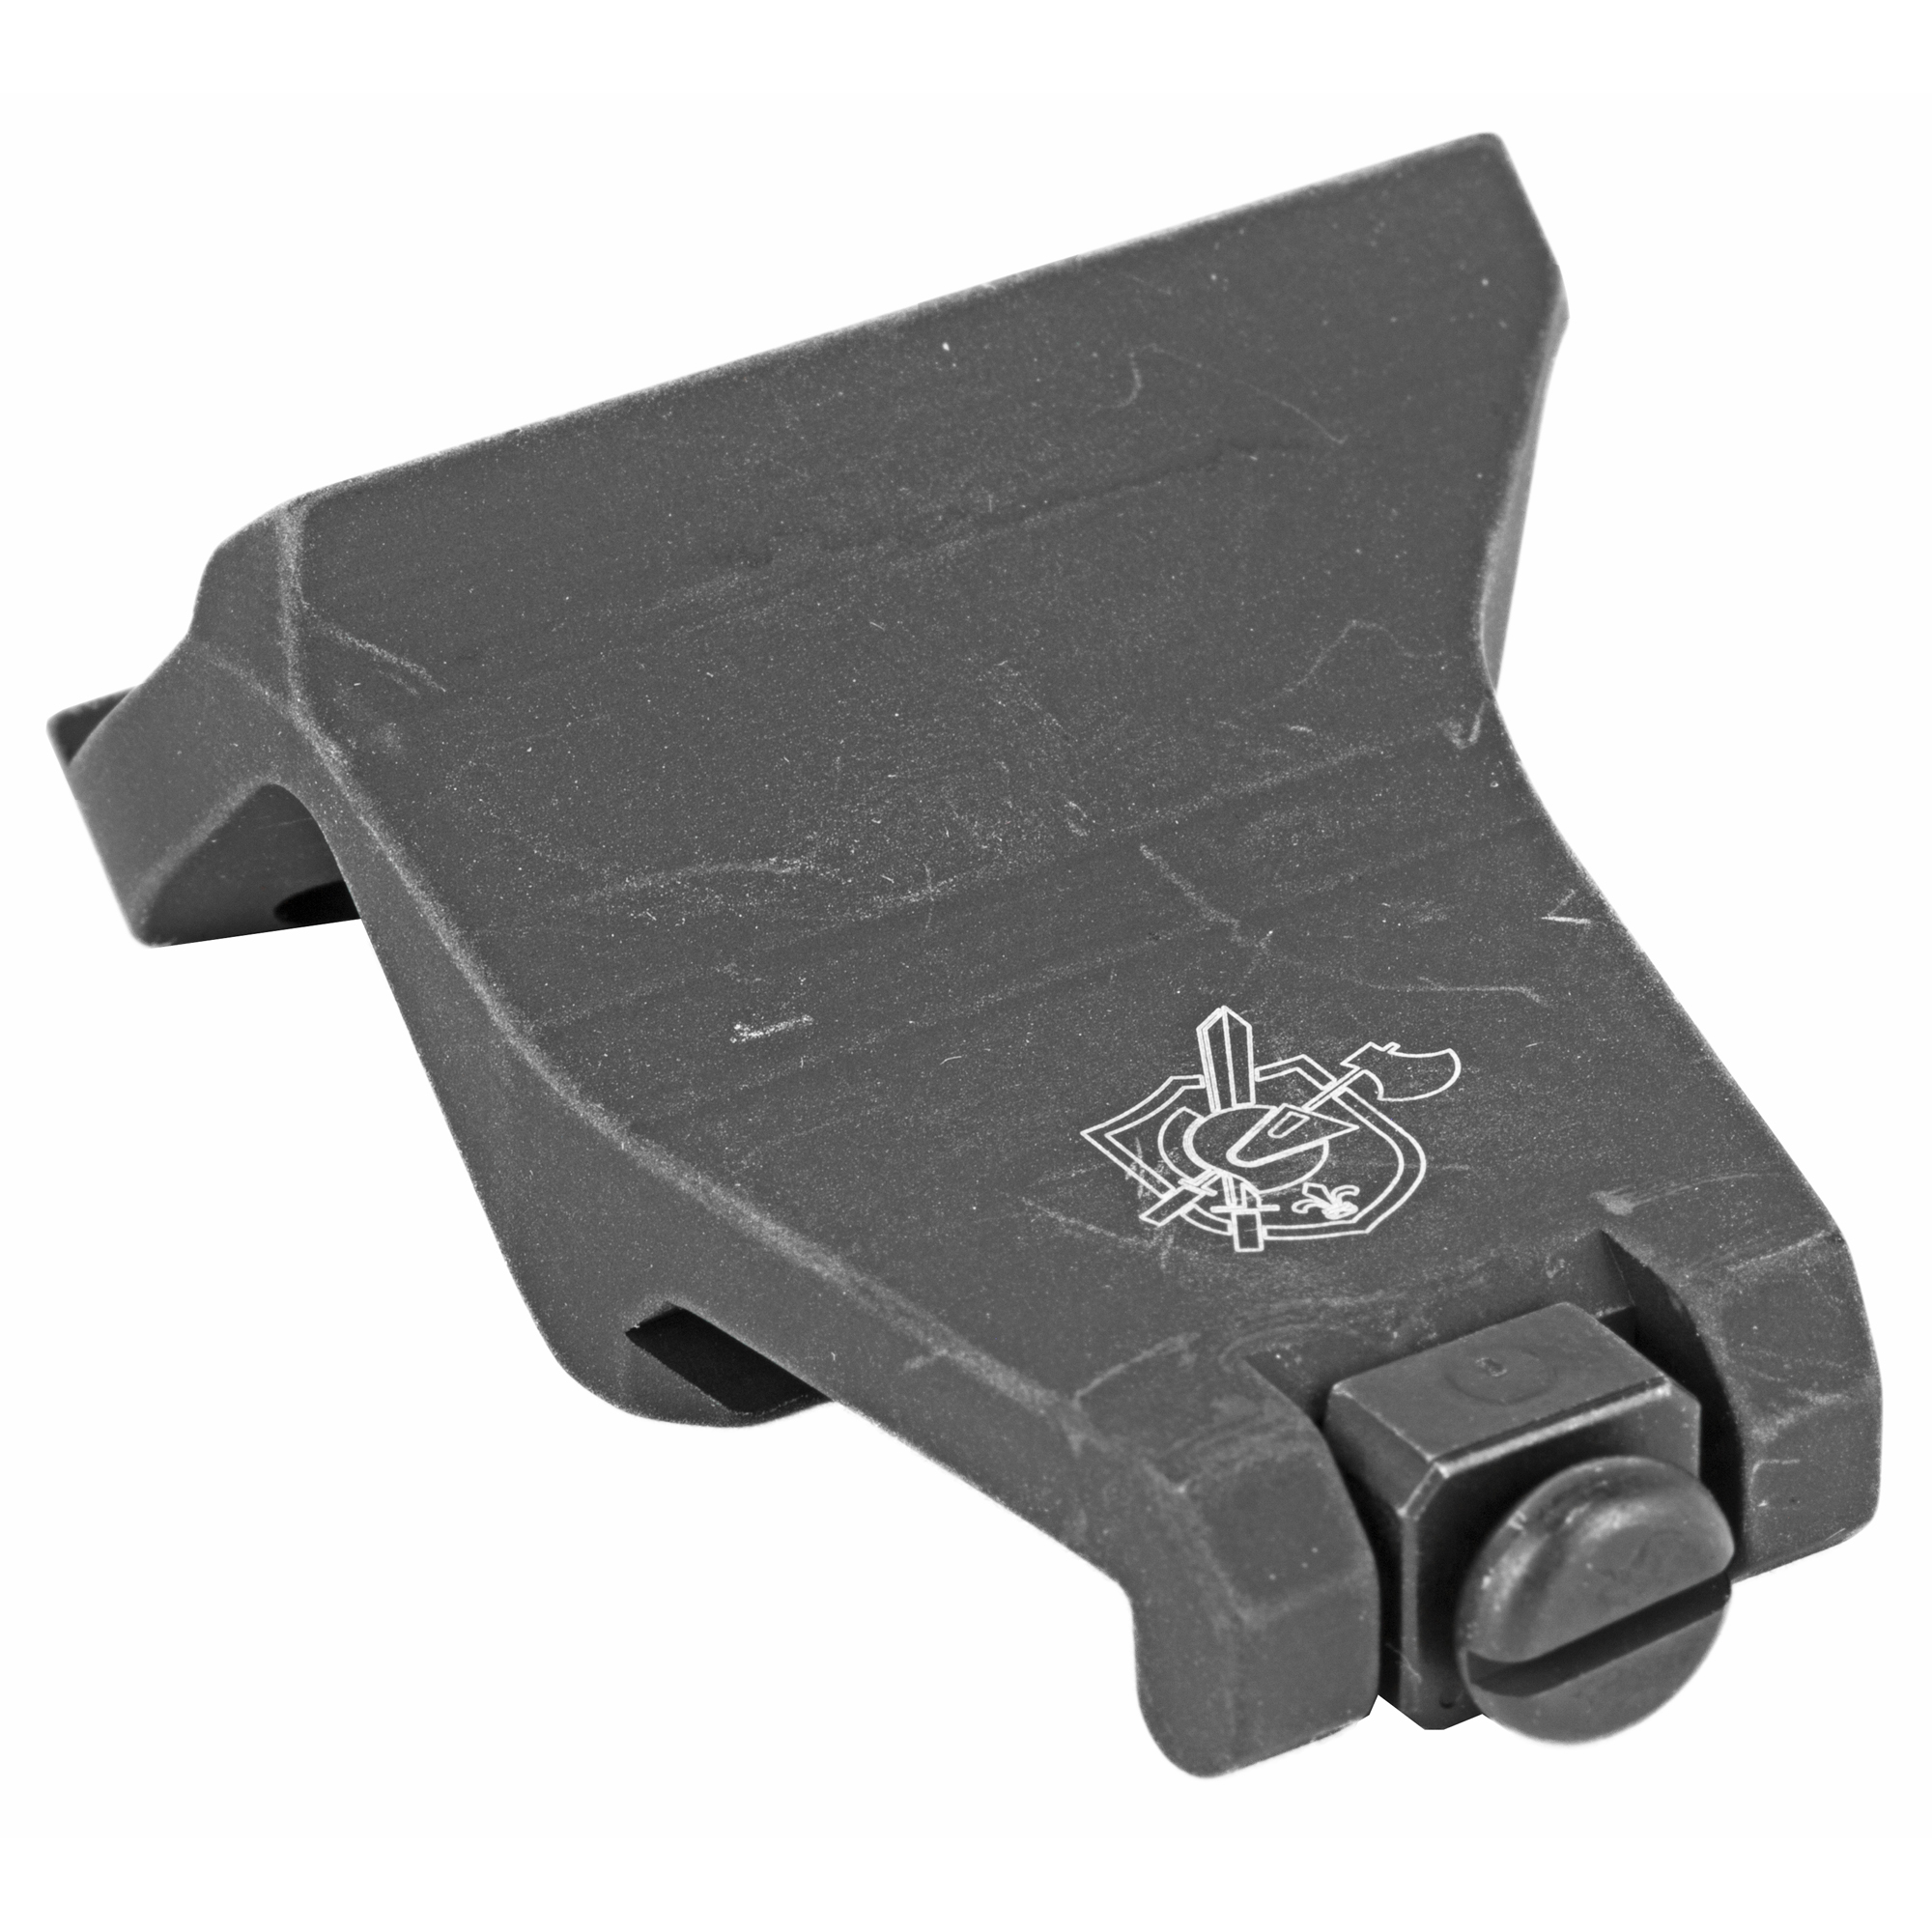 """The KAC 45 Degree Offset Aimpoint Micro Mount is intended to be attached to either the 3 o'clock or 9 o'clock rail position"""" placing the red dot to the side of a primary optic at a 45-degree angle. A quick roll of the rifle is all that's required for the shooter to acquire a useable sight picture through the red dot for close range engagements. Compatible with both T-1"""" T-2 H-1 and H-2 Aimpoint Micro optics. Aimpoint not included."""